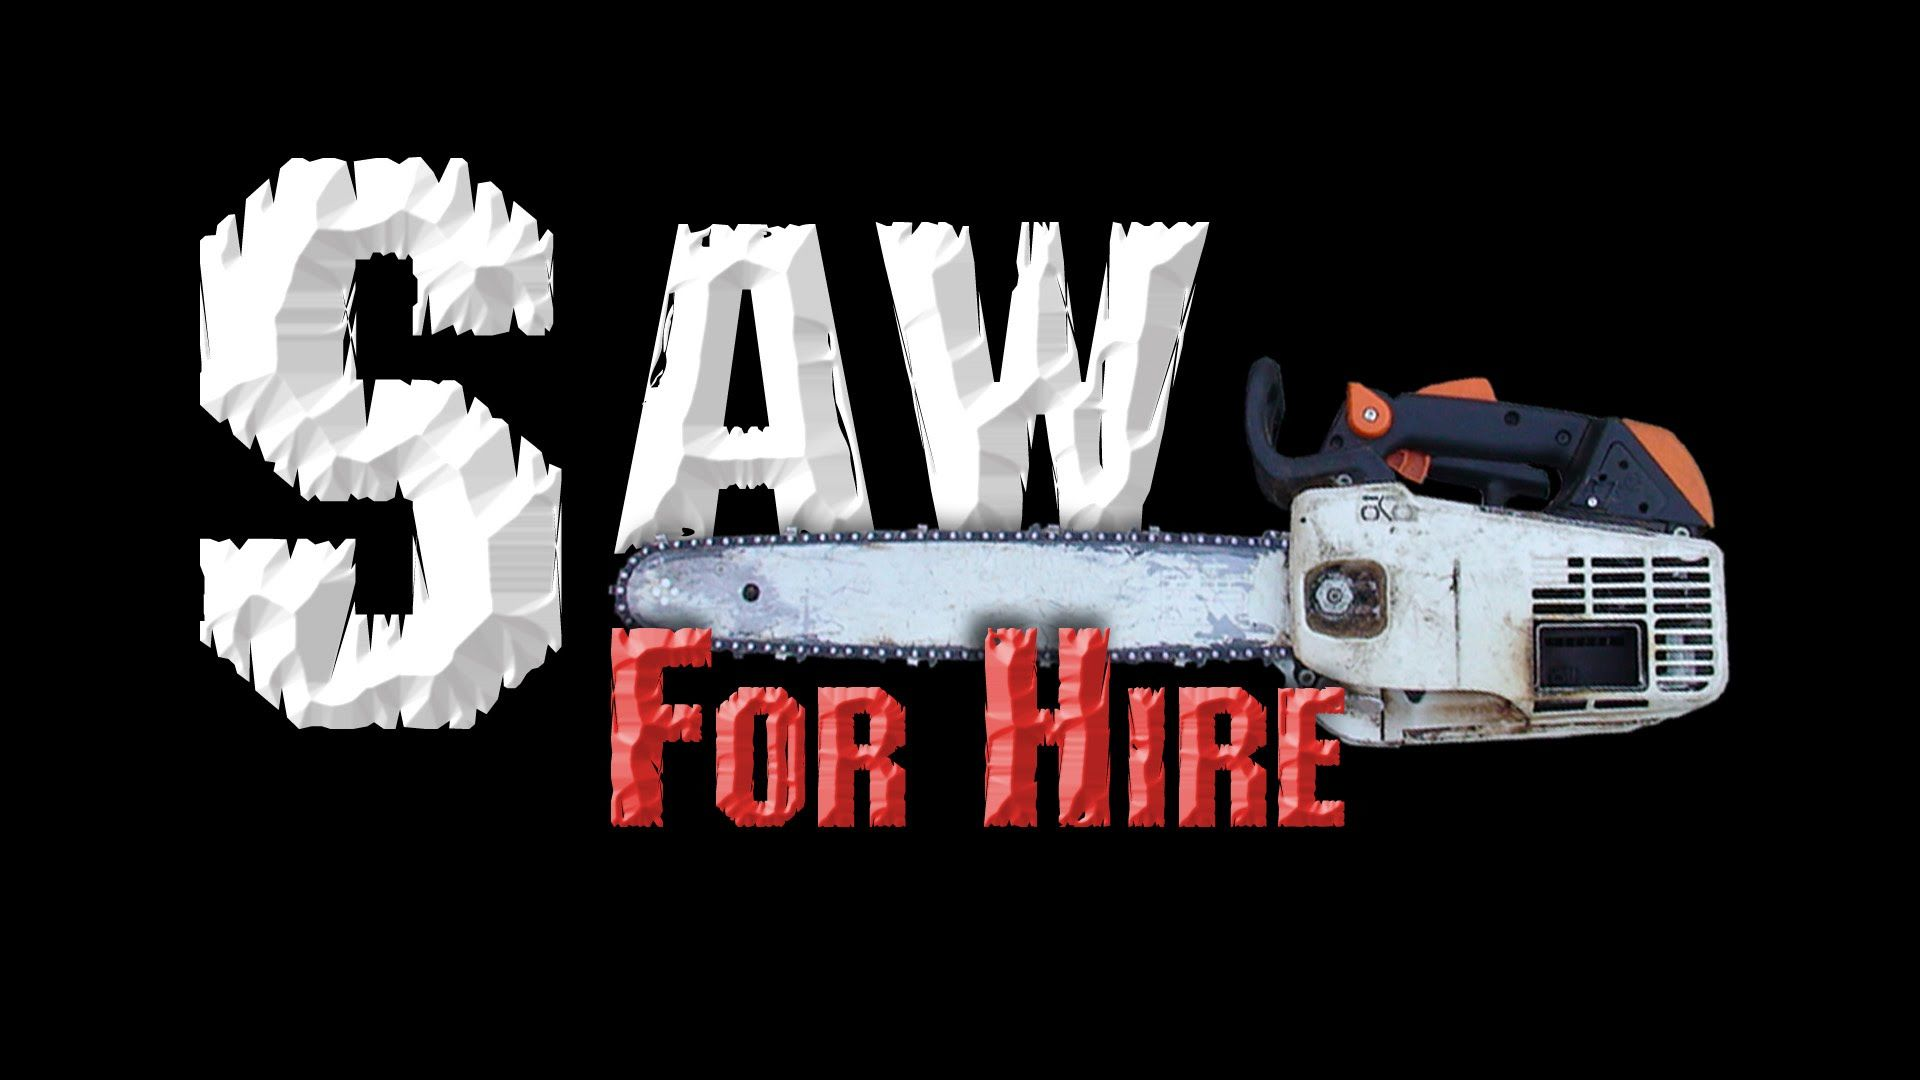 Saw for Hire